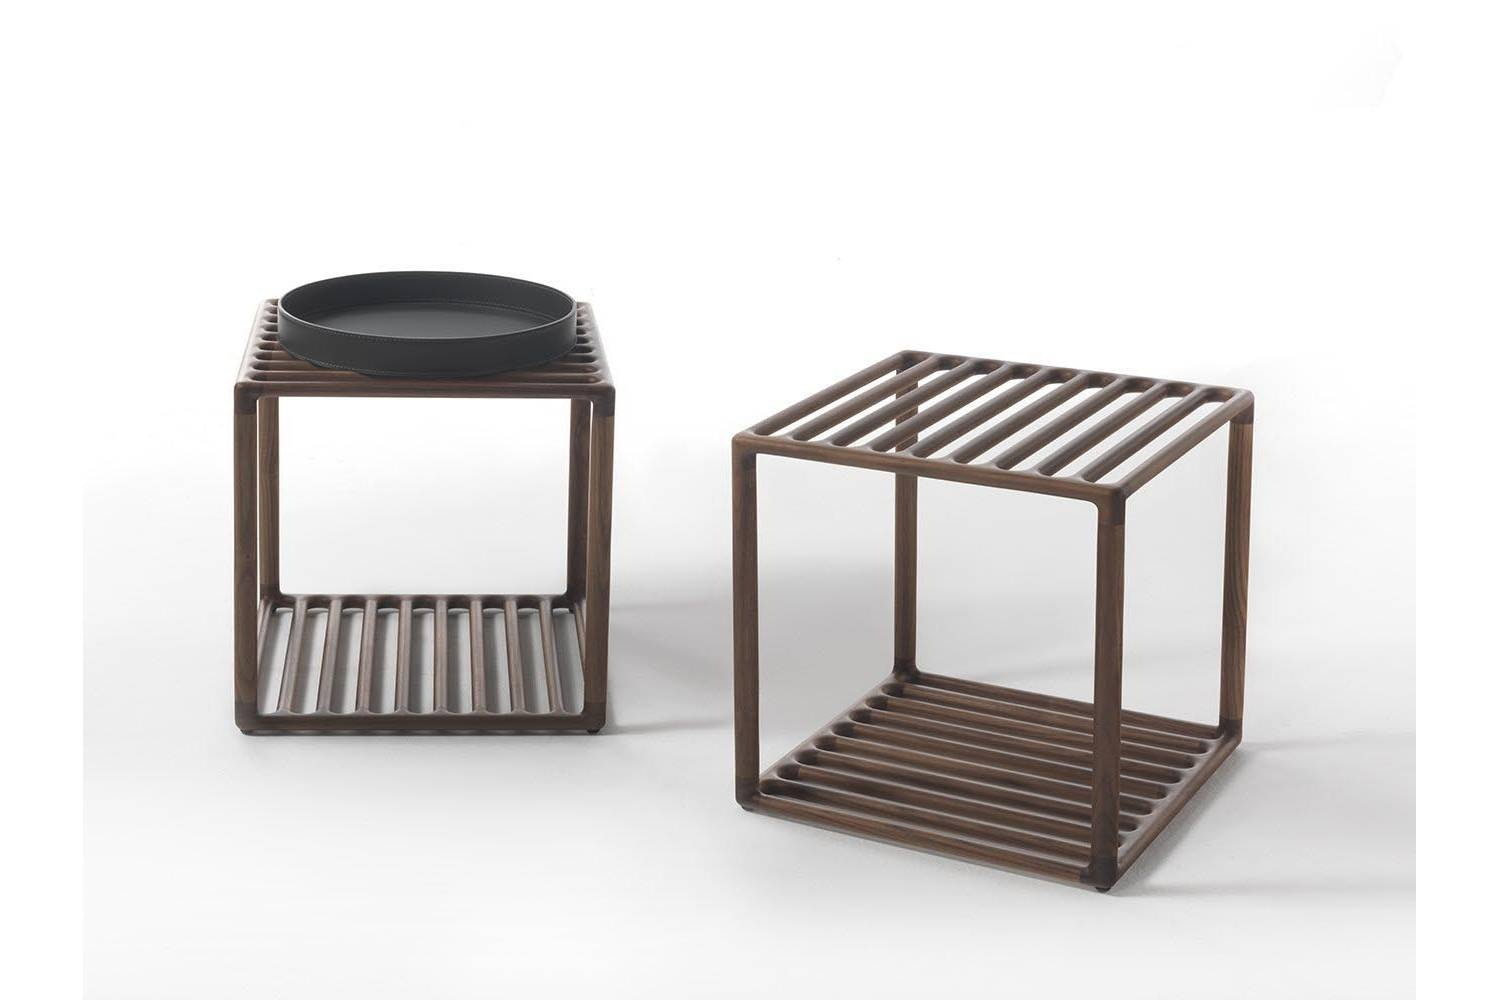 Raster Side Table by T. Colzani for Porada